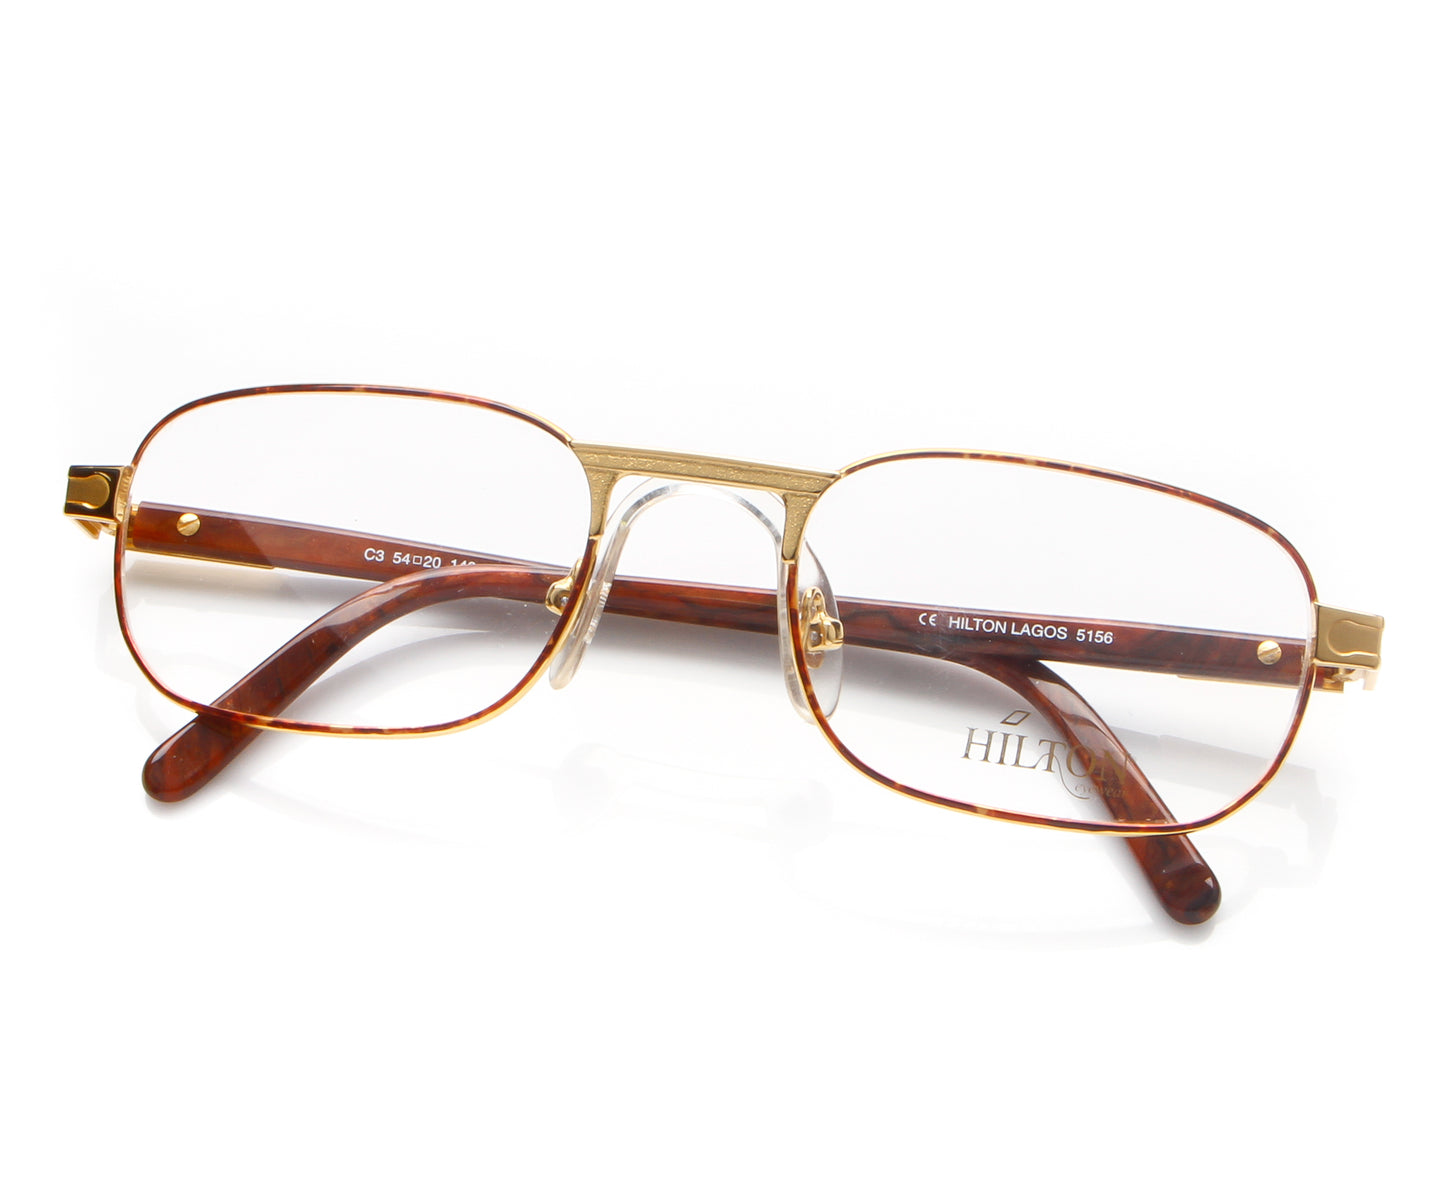 Vintage Hilton Lagos 5156 3 Thumb, Hilton , glasses frames, eyeglasses online, eyeglass frames, mens glasses, womens glasses, buy glasses online, designer eyeglasses, vintage sunglasses, retro sunglasses, vintage glasses, sunglass, eyeglass, glasses, lens, vintage frames company, vf